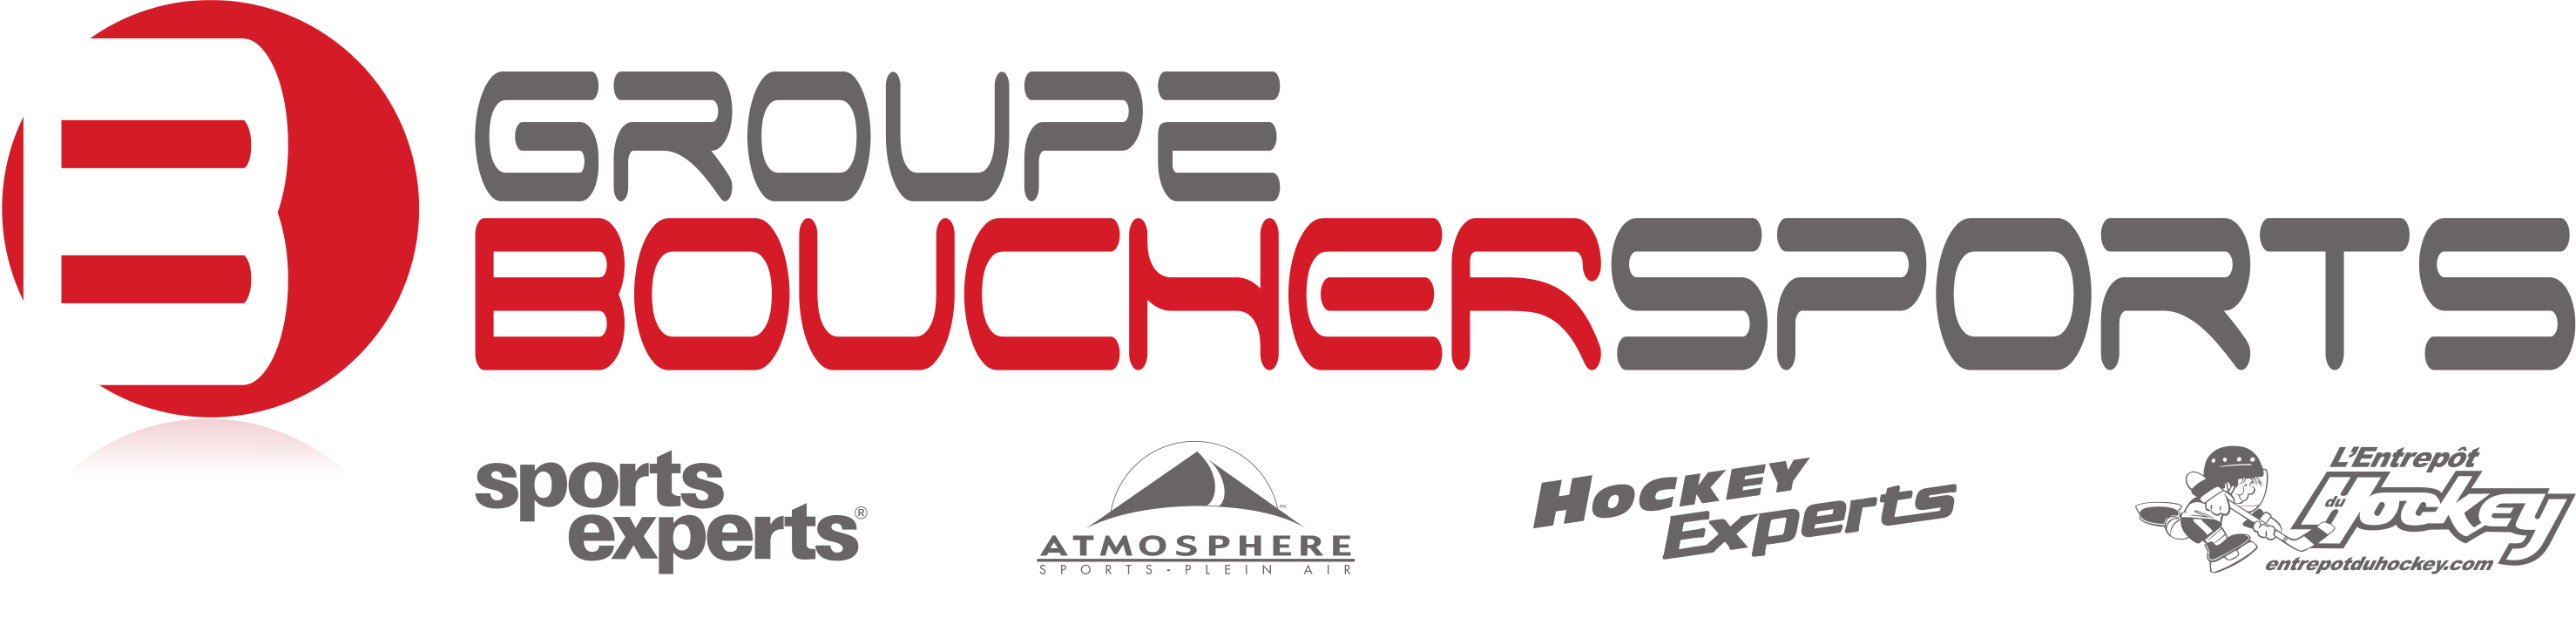 Groupe Boucher Sports